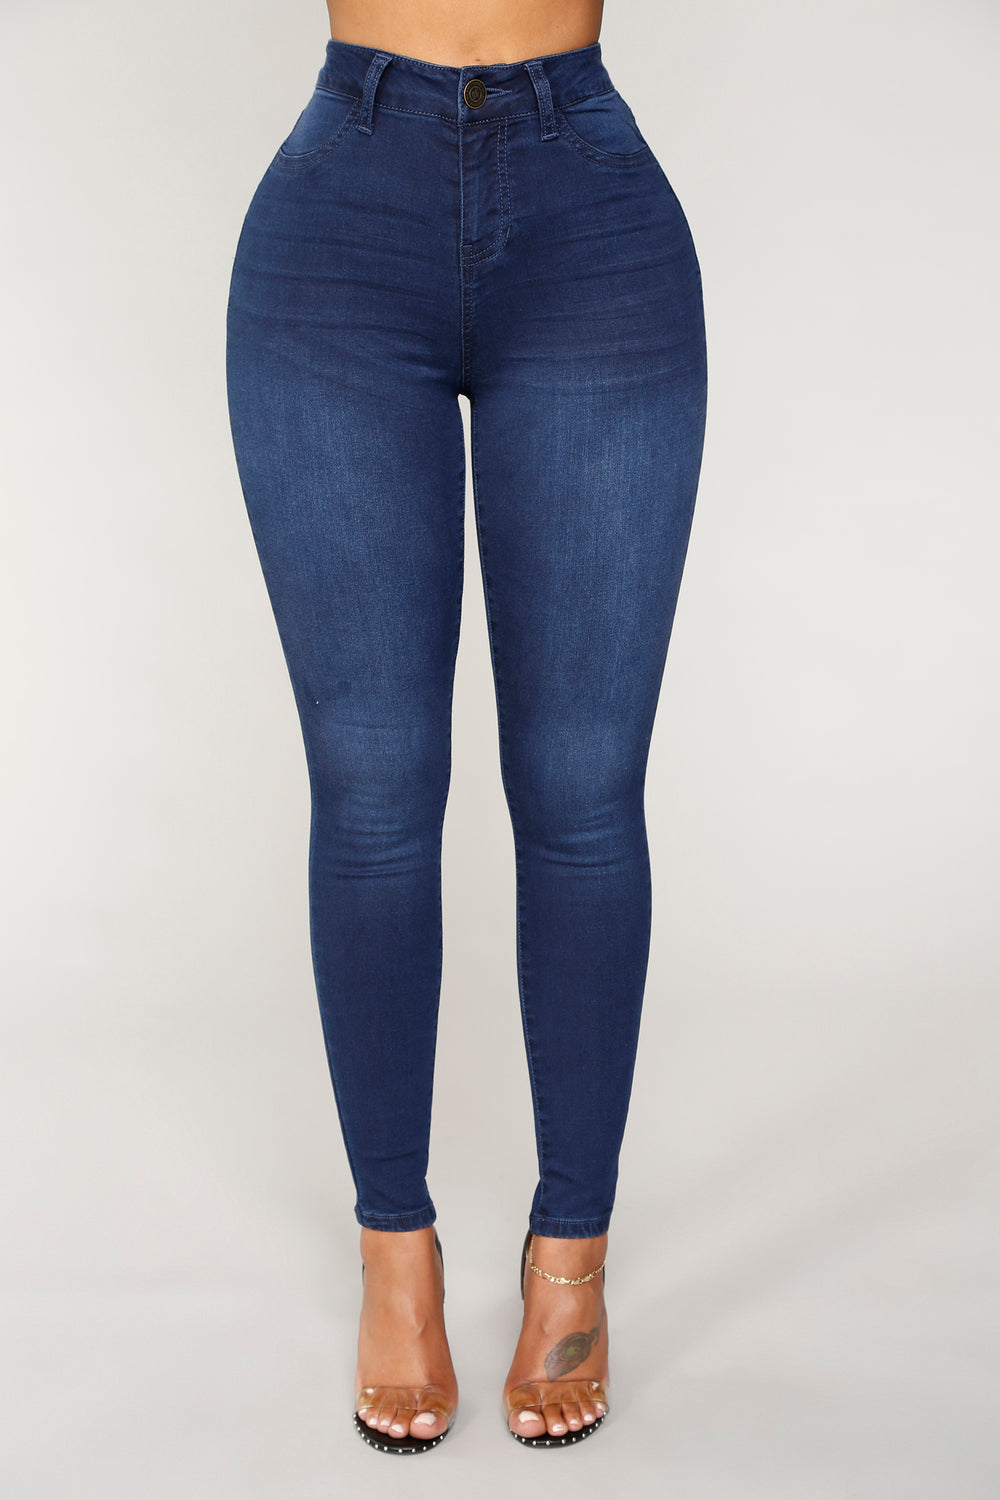 Giana High Rise Ankle Jeans - Dark Denim